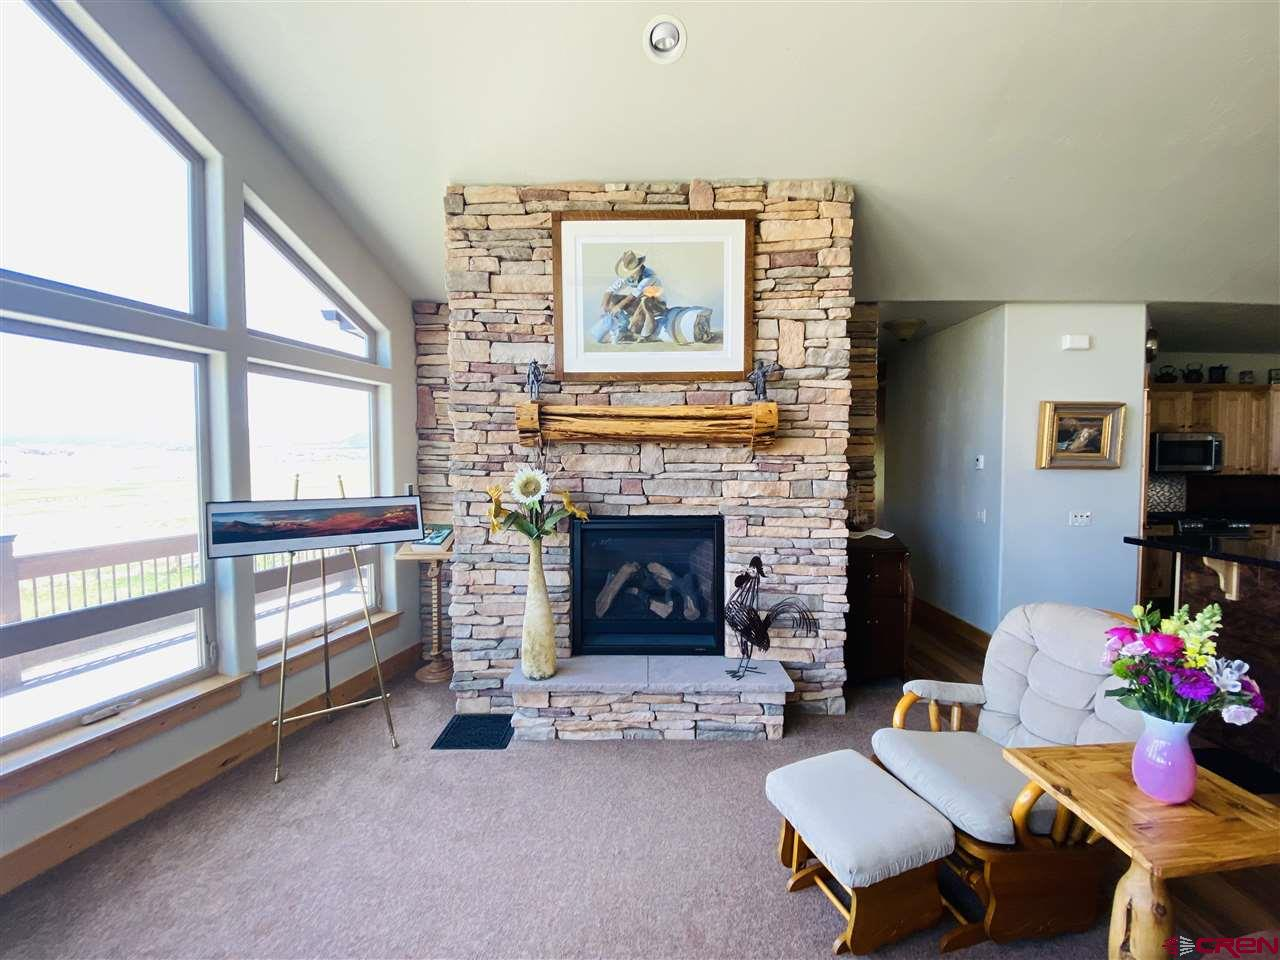 MLS# 769183 - 22 - 79712 Antler Trail, Crawford, CO 81415